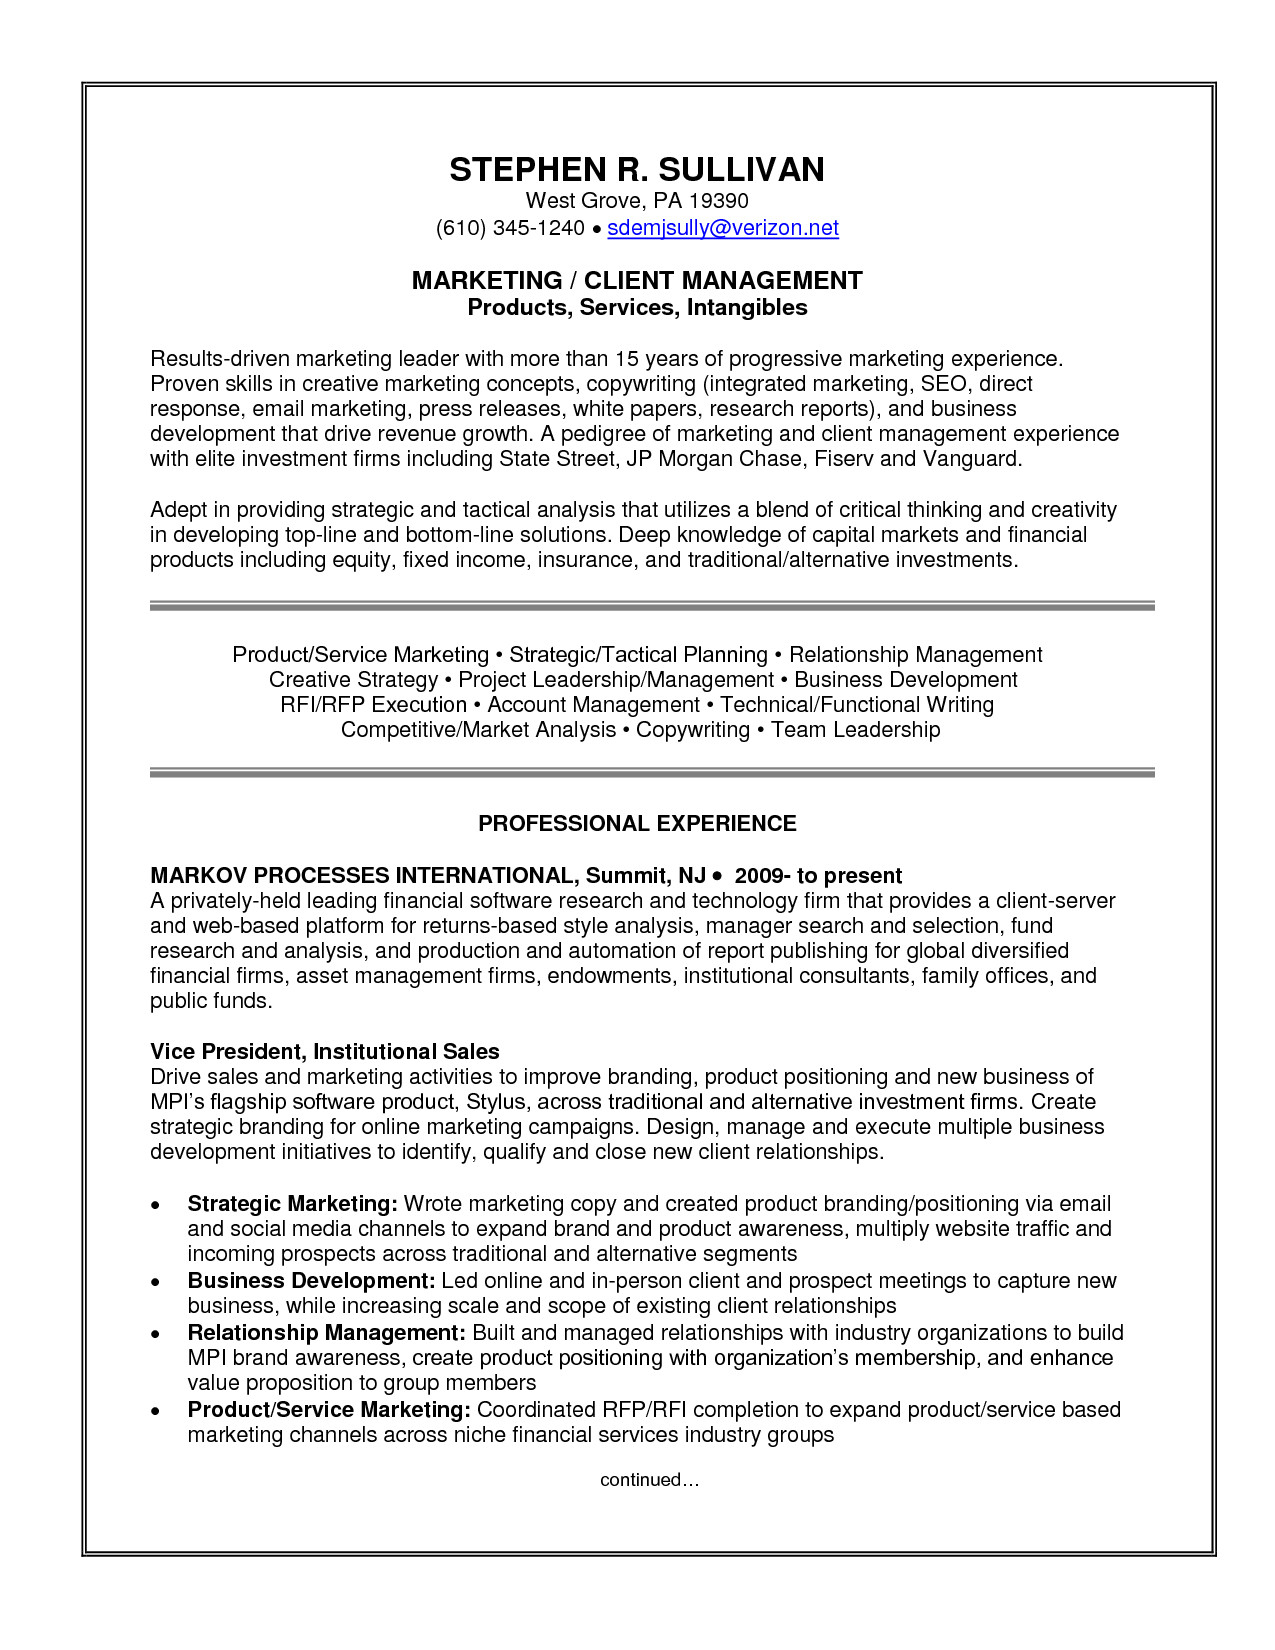 Letter to Investors Template - Sample Resume Writing format Reference Best Ideas 6 Sample Warehouse